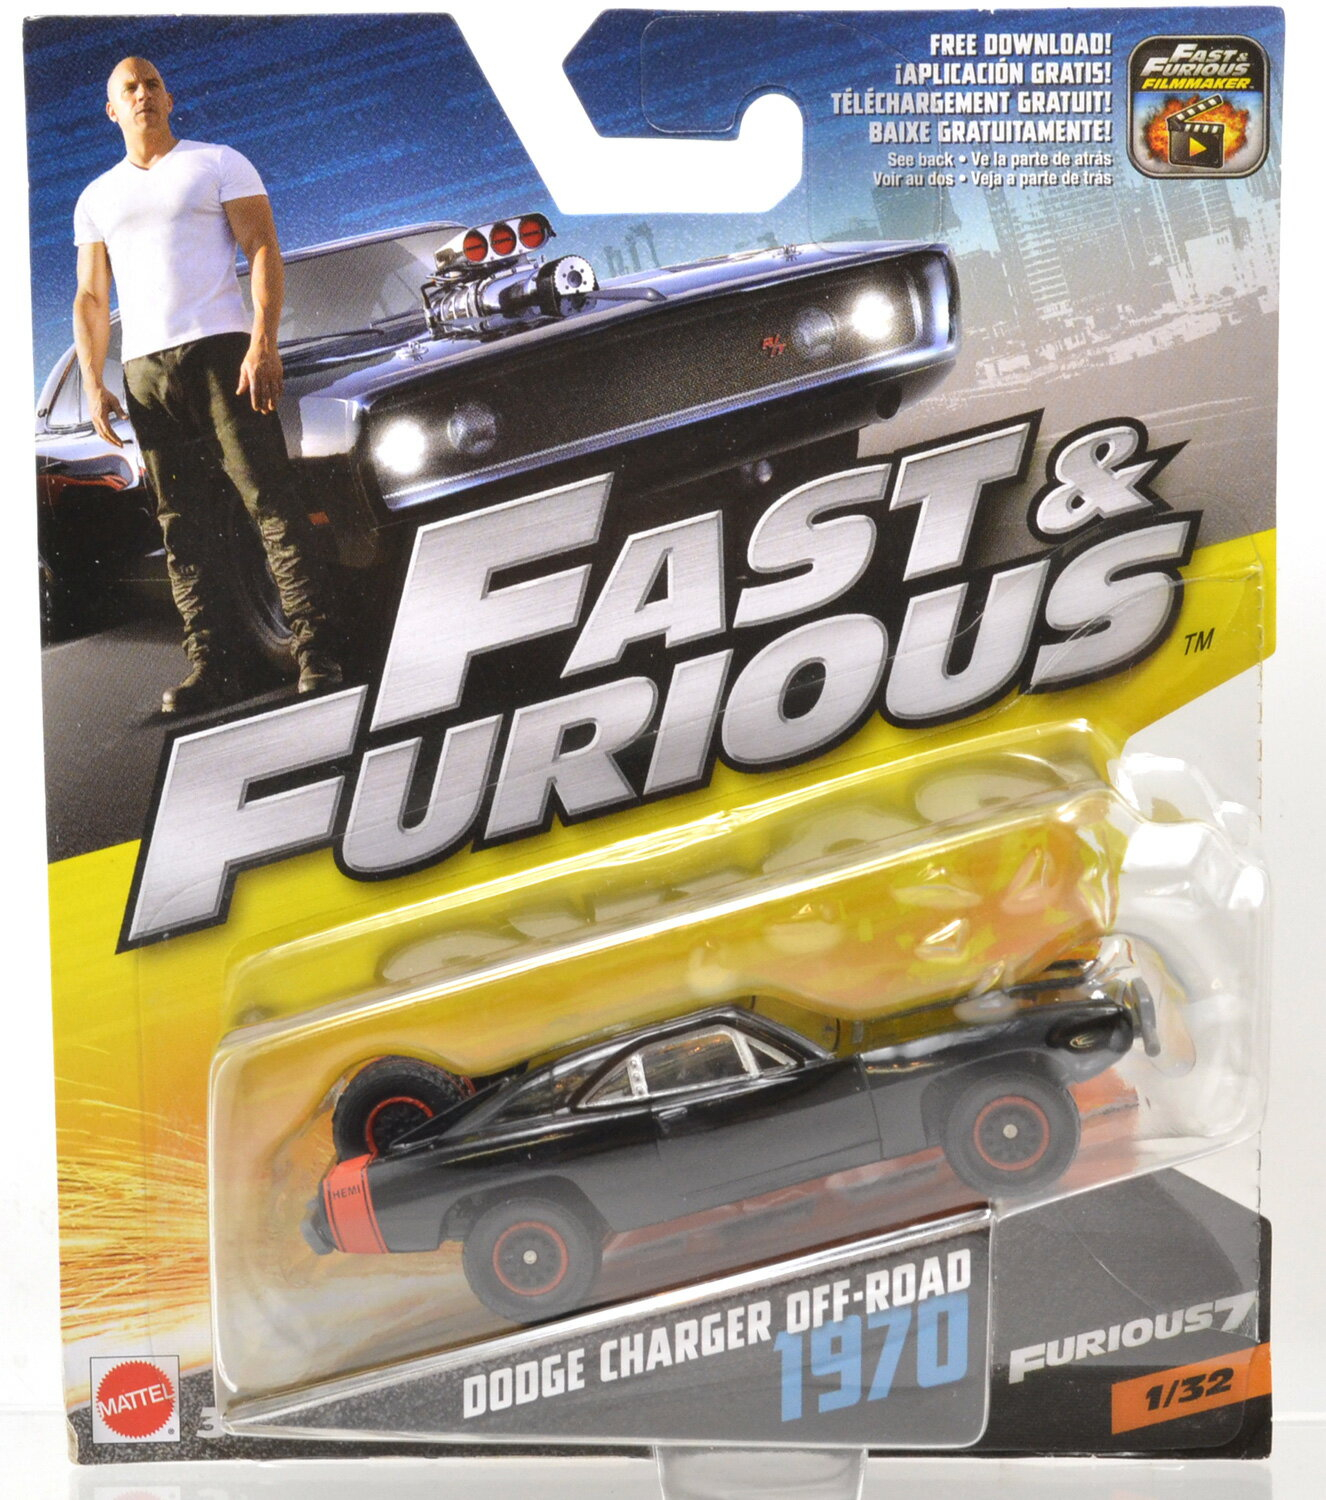 """MATTEL 1:55 SCALE """"THE FAST AND THE FURIOUS"""" """"1970 DODGE CHARGER OFF-ROAD"""" マテル社製 1:55スケール """"1970 ダッジ チャージャー オフロード"""" FCG01-986A"""